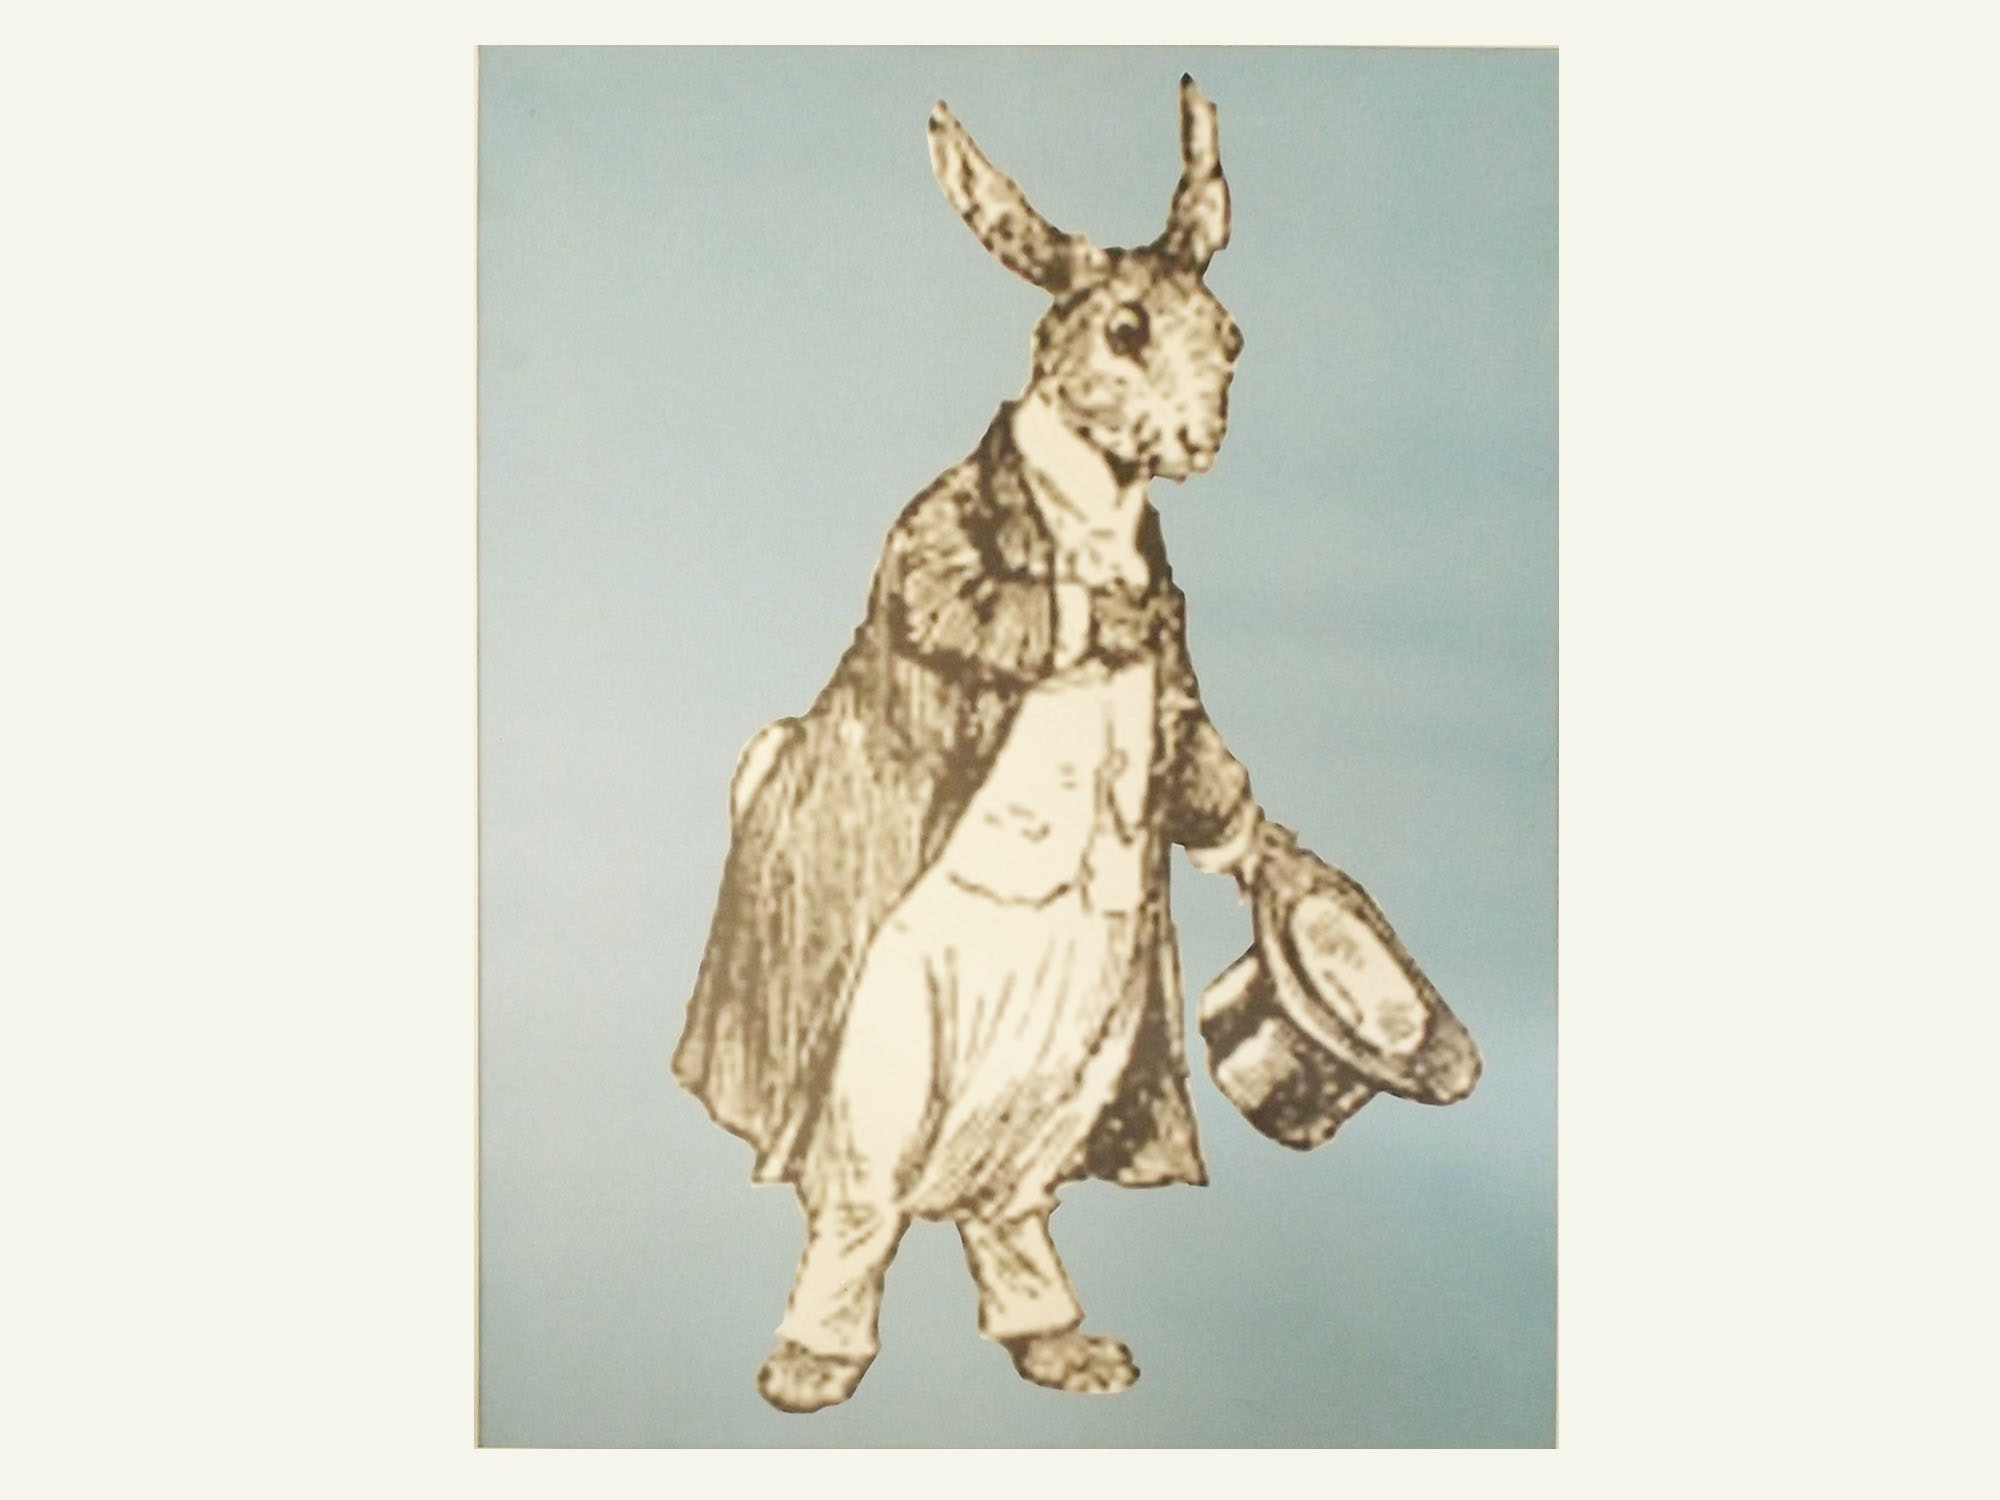 Original Andrew VanSickle Work on Canvas of the March Hare